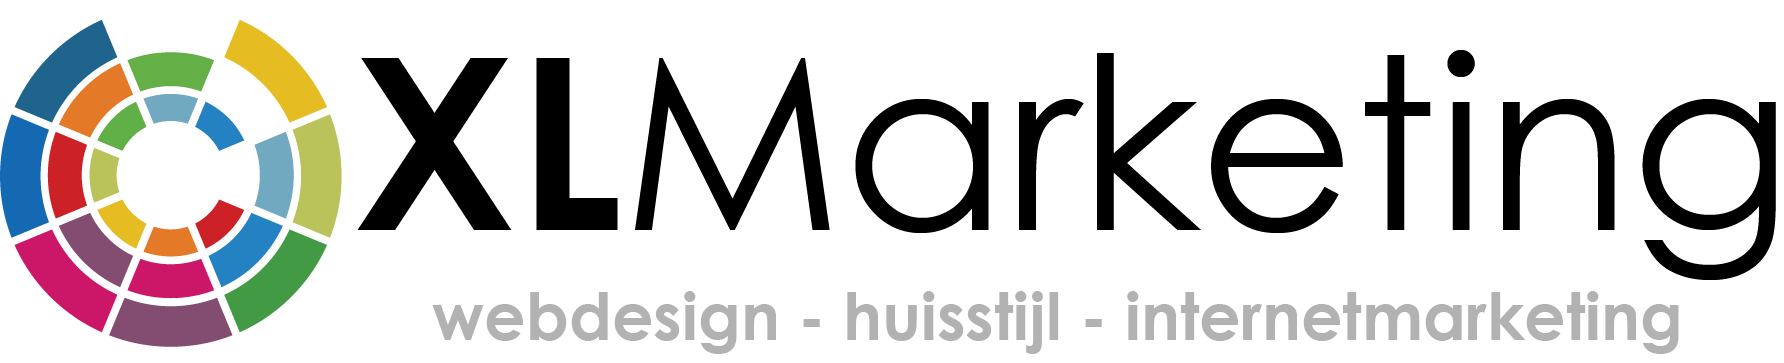 XL Marketing | Webdesign - Huisstijl - Internetmarketing